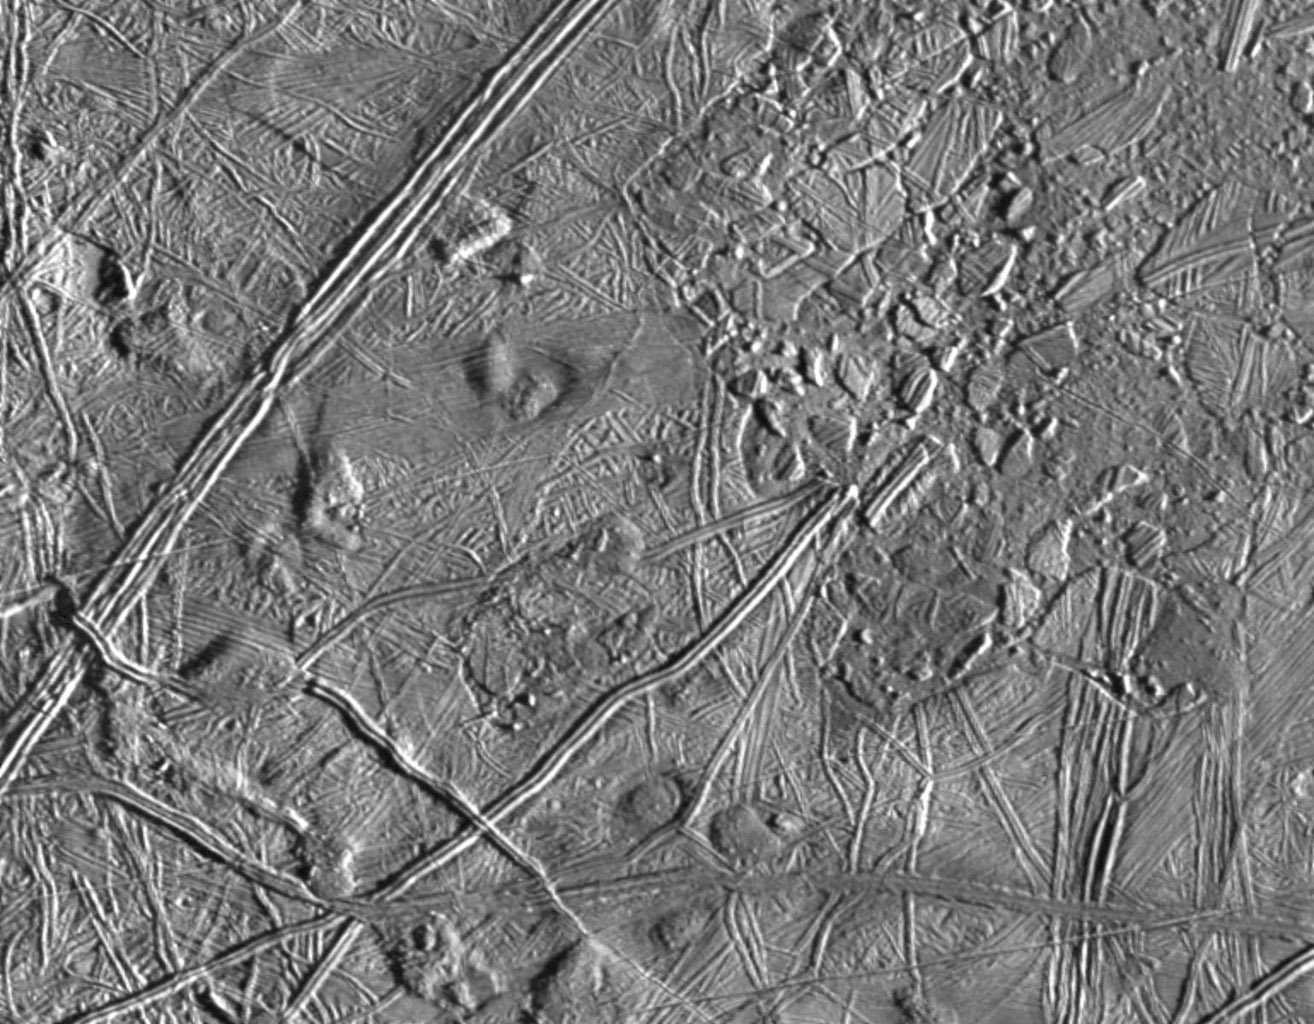 The complex terrain of Jupiter's moon, Europa was taken by NASA's Galileo's Solid State Imaging system from a distance of 17,900 kilometers (11,100 miles) on the spacecraft's sixth orbit around Jupiter, on February 20, 1997.